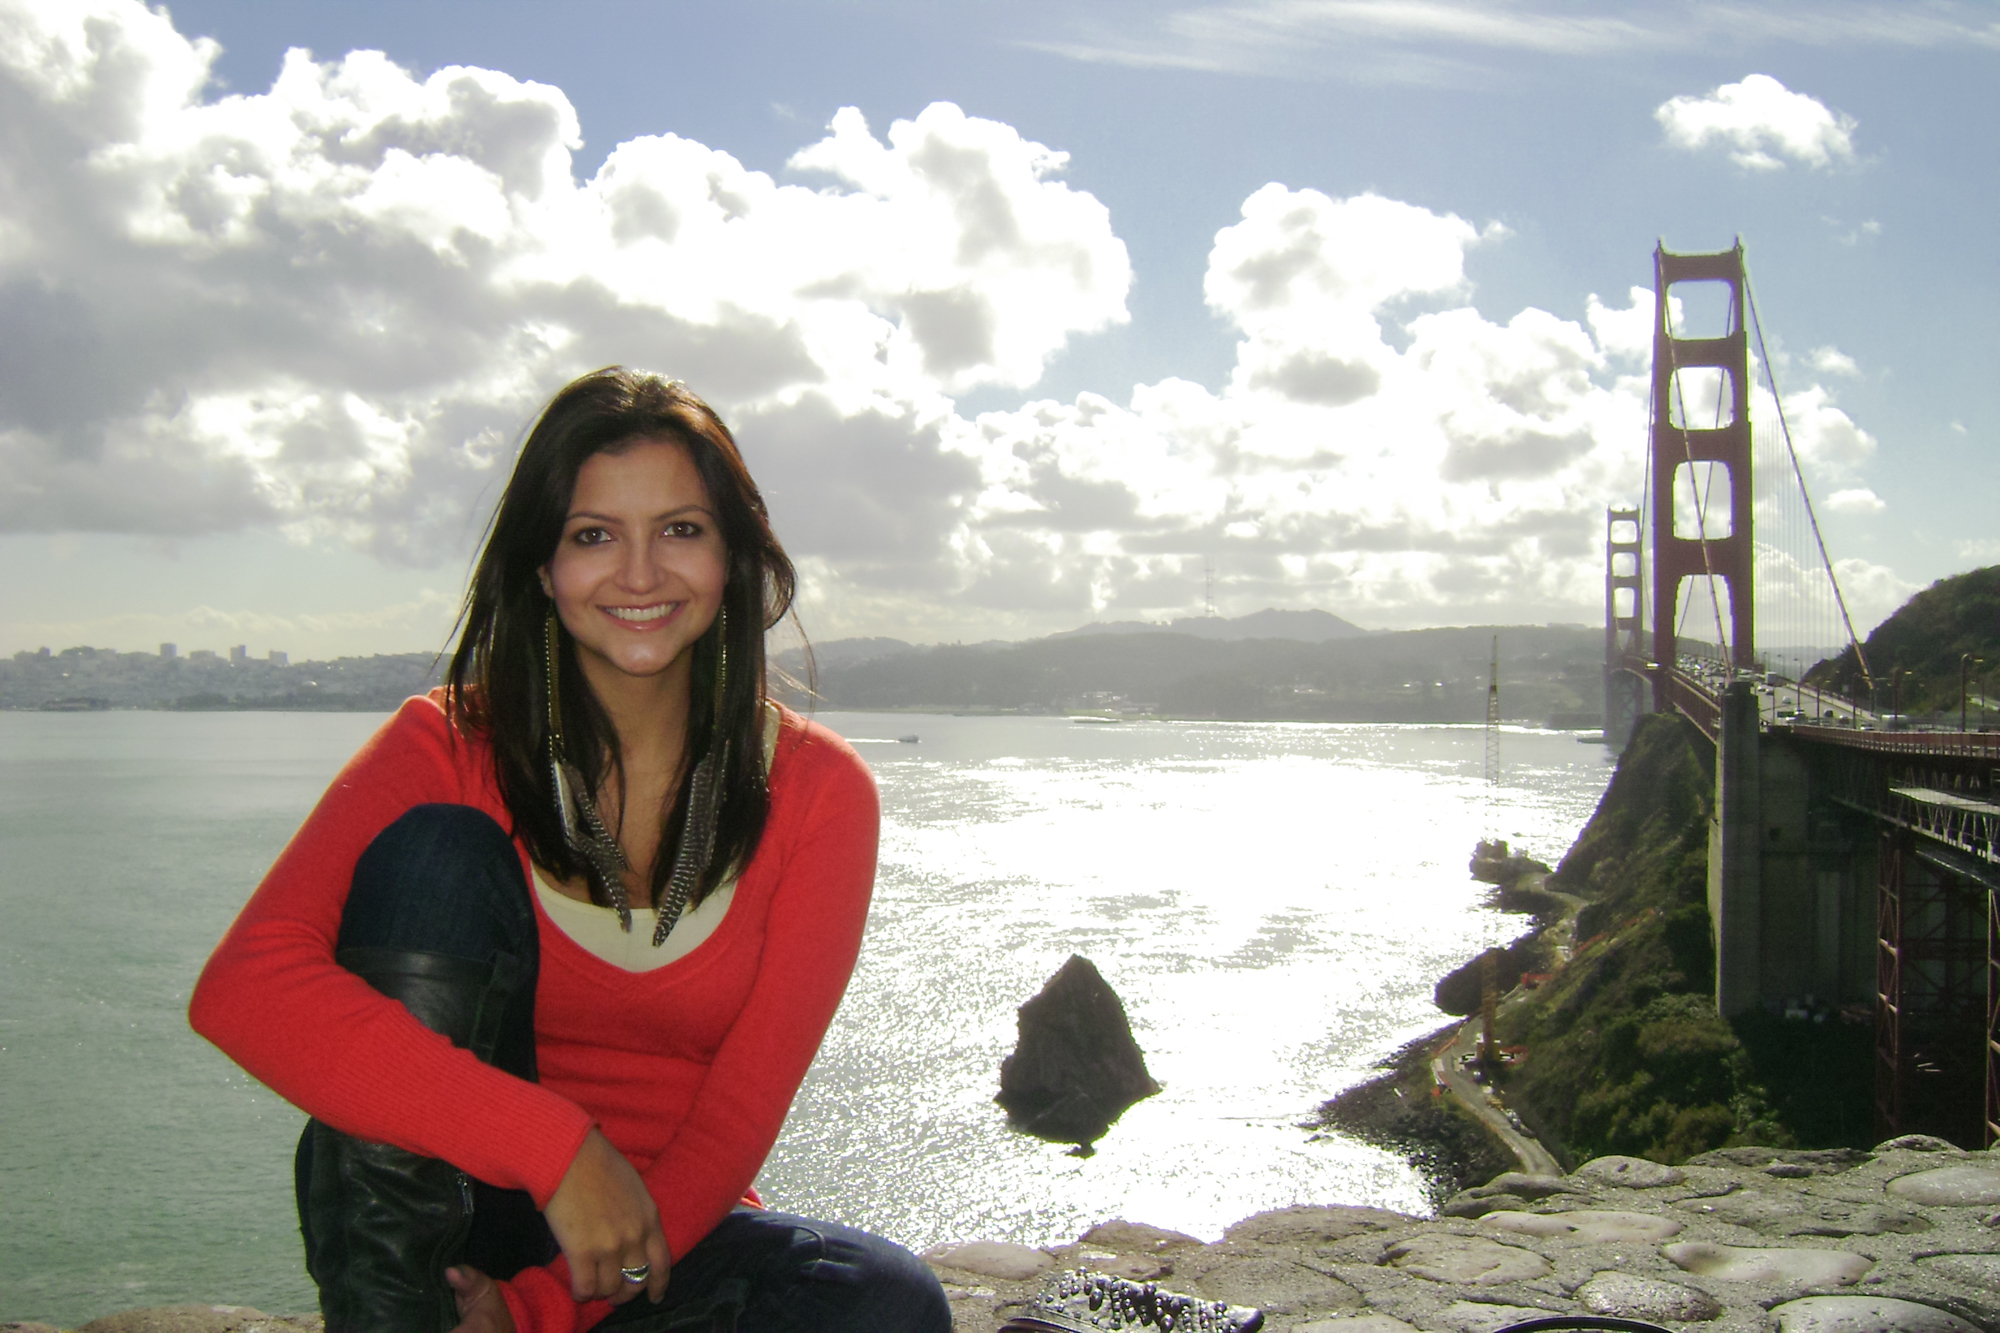 Elaine in San Francisco - California